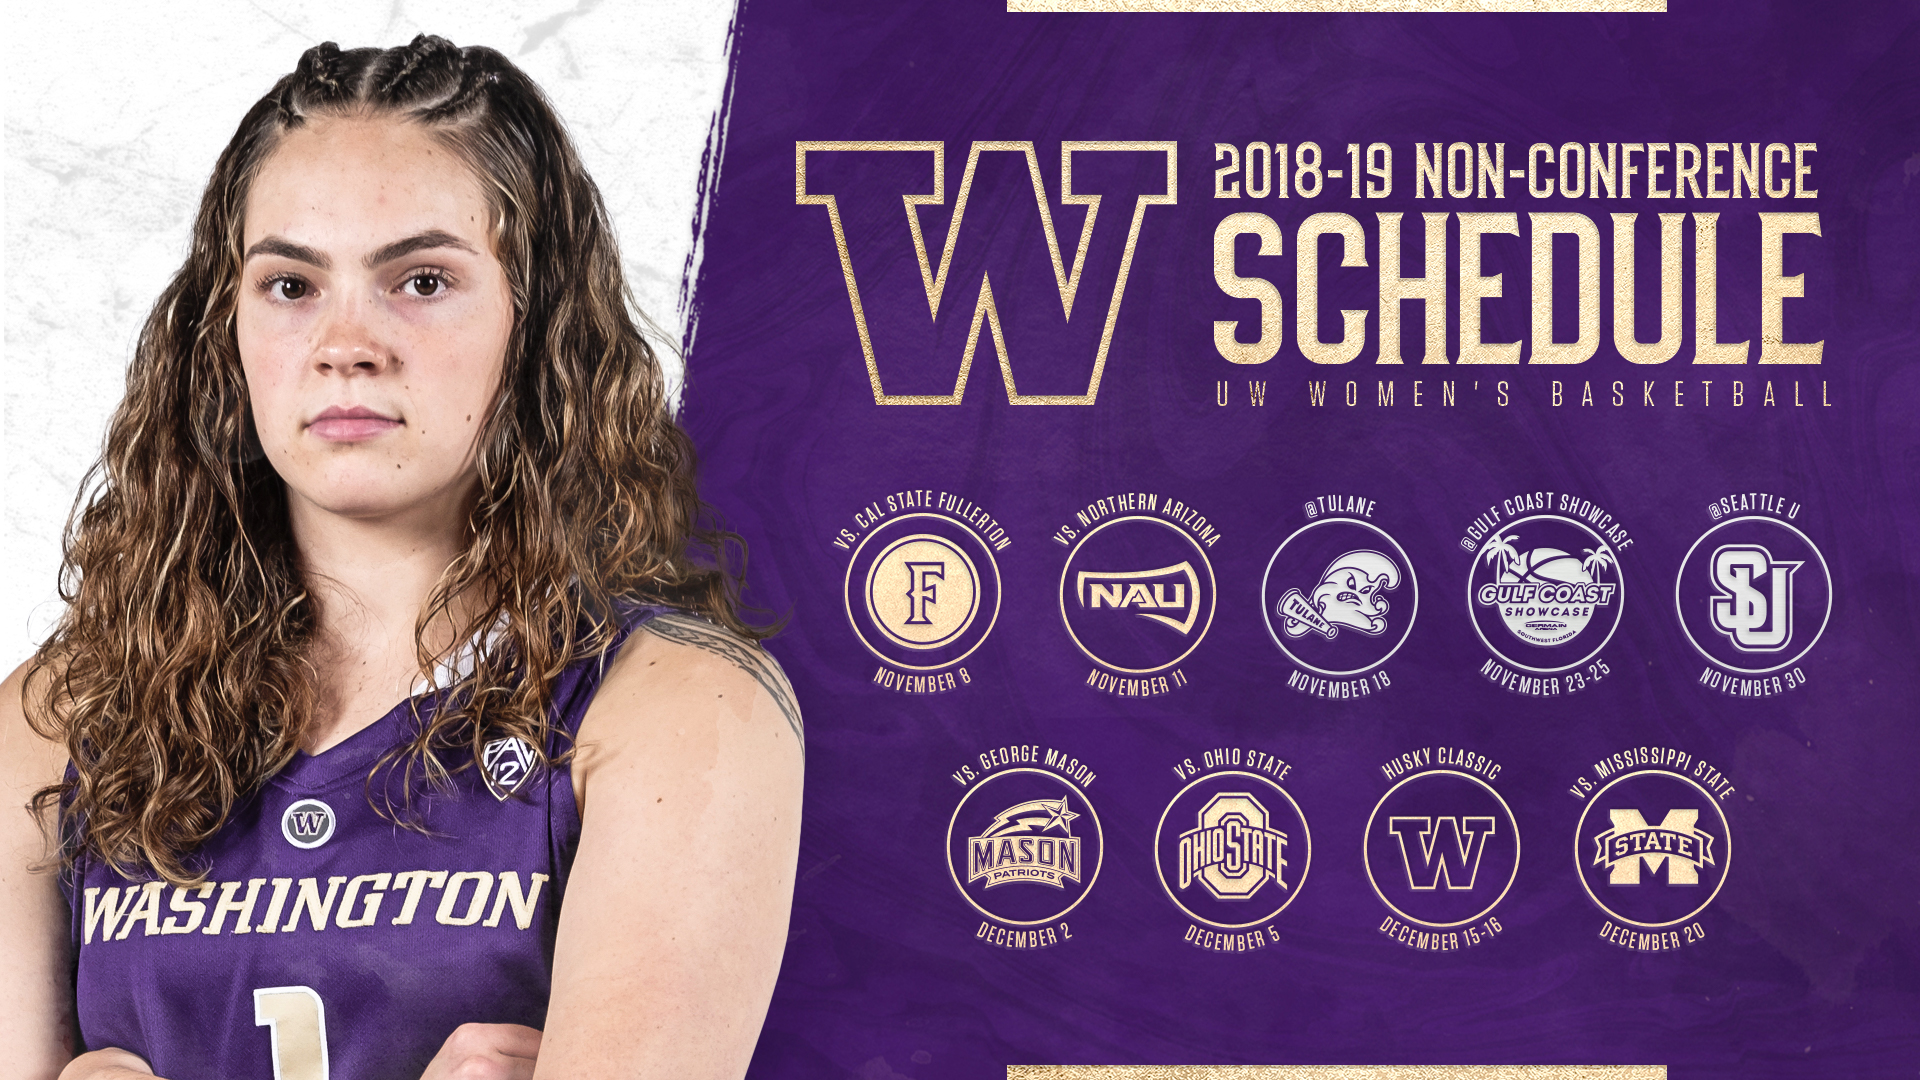 huskies release 2018-19 non-conference schedule - university of